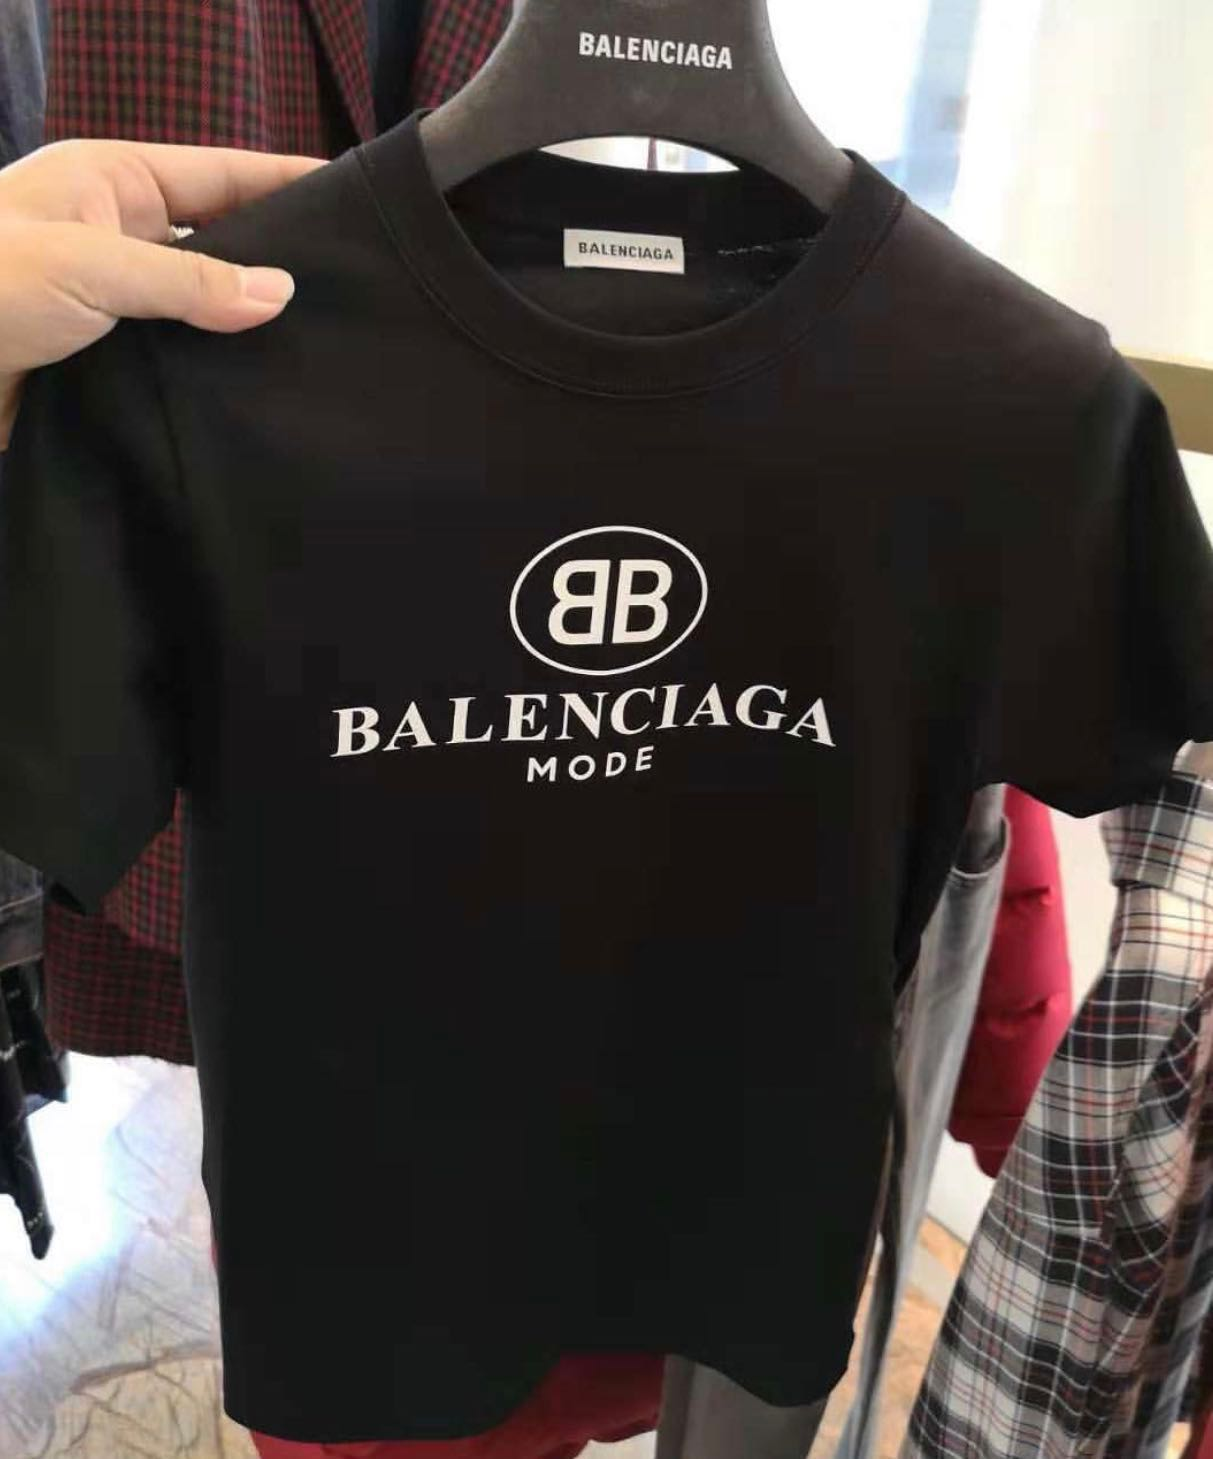 b02692c9b2af 👱 ♀️Authentic Ladies Slim Cut BALENCIAGA Tee, Women's Fashion, Clothes,  Tops on Carousell